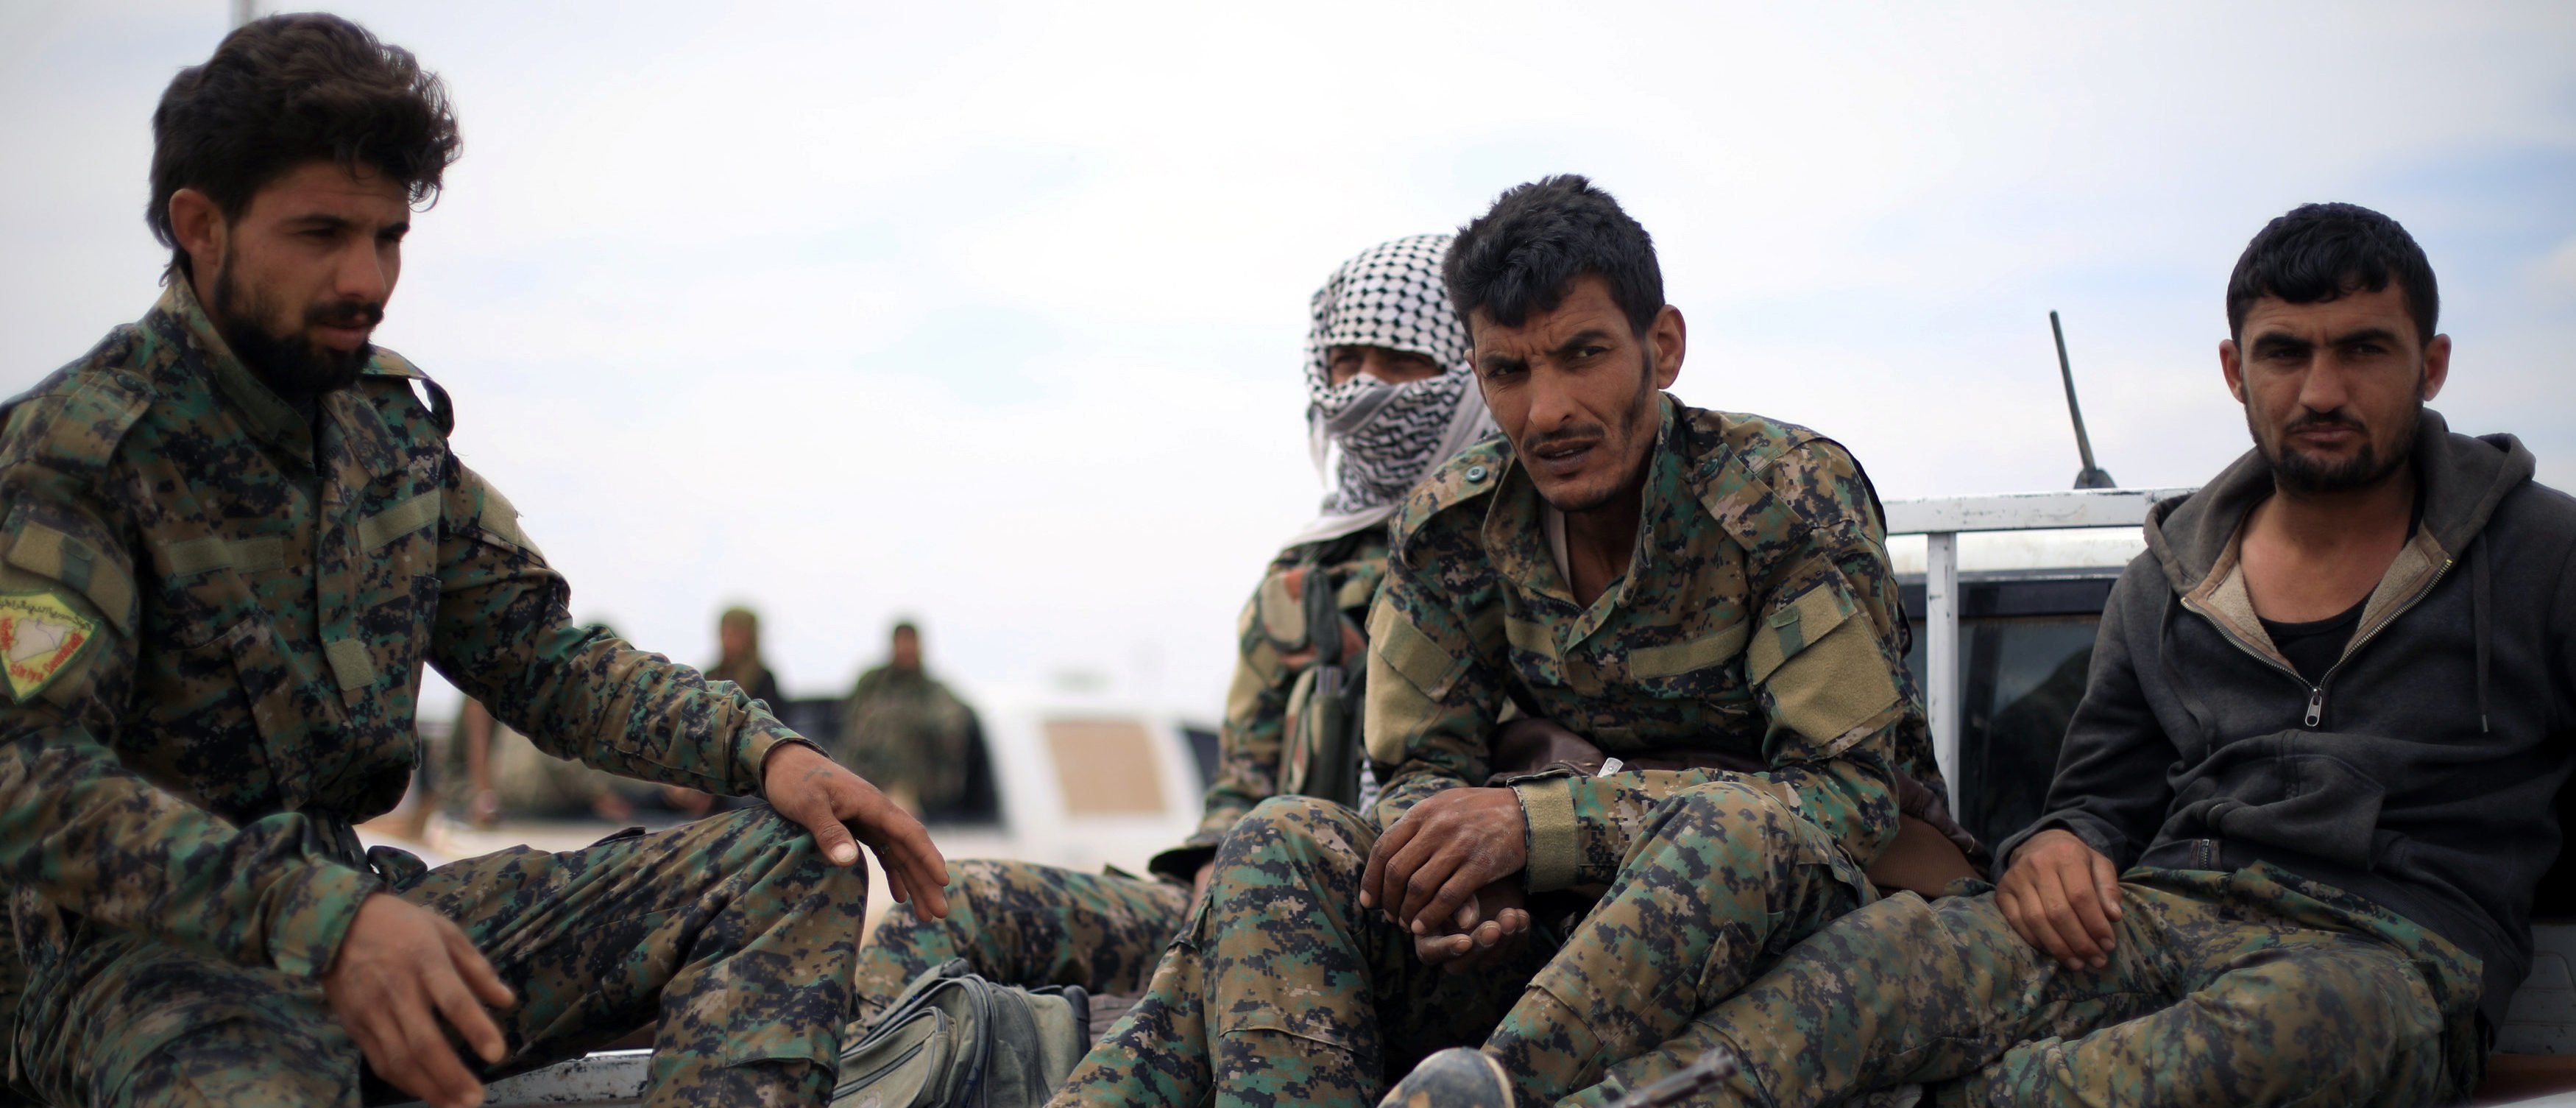 Fighters of Syrian Democratic Forces (SDF) sit at the back of a truck in Deir al-Zor, Syria May 1, 2018. REUTERS/Rodi Said - RC14EFFAE860